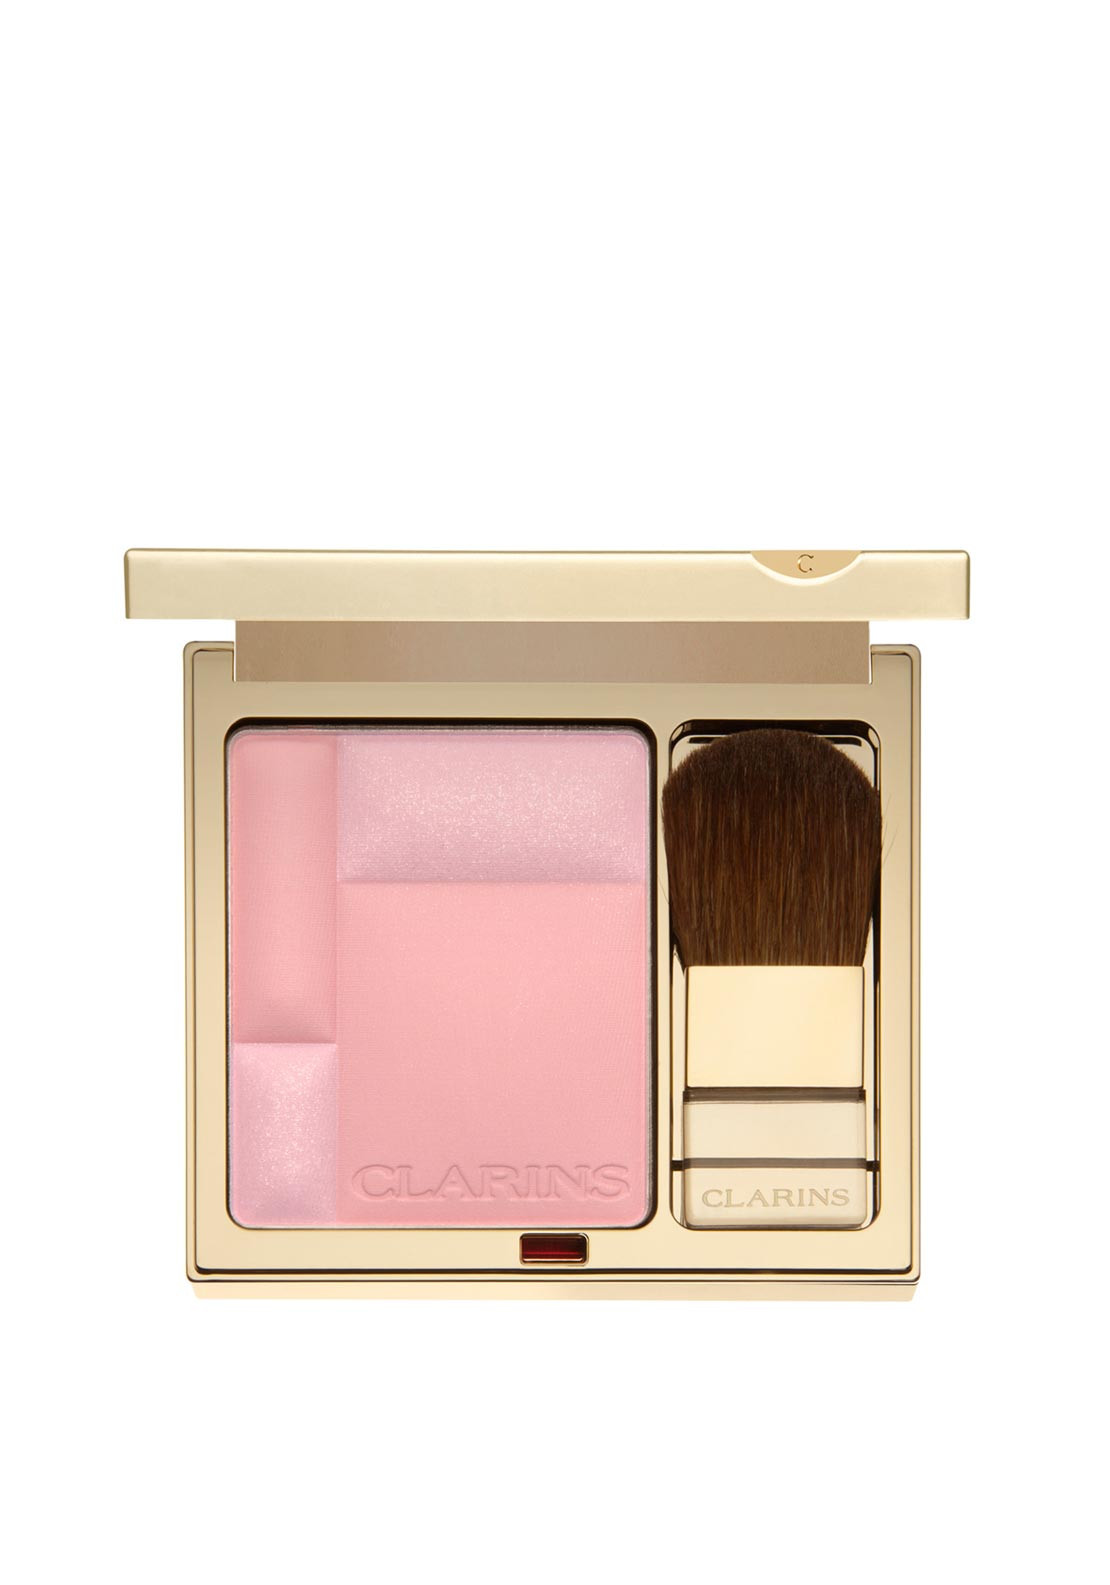 Clarins Illuminating Cheek Colour, 07 Tawny Pink